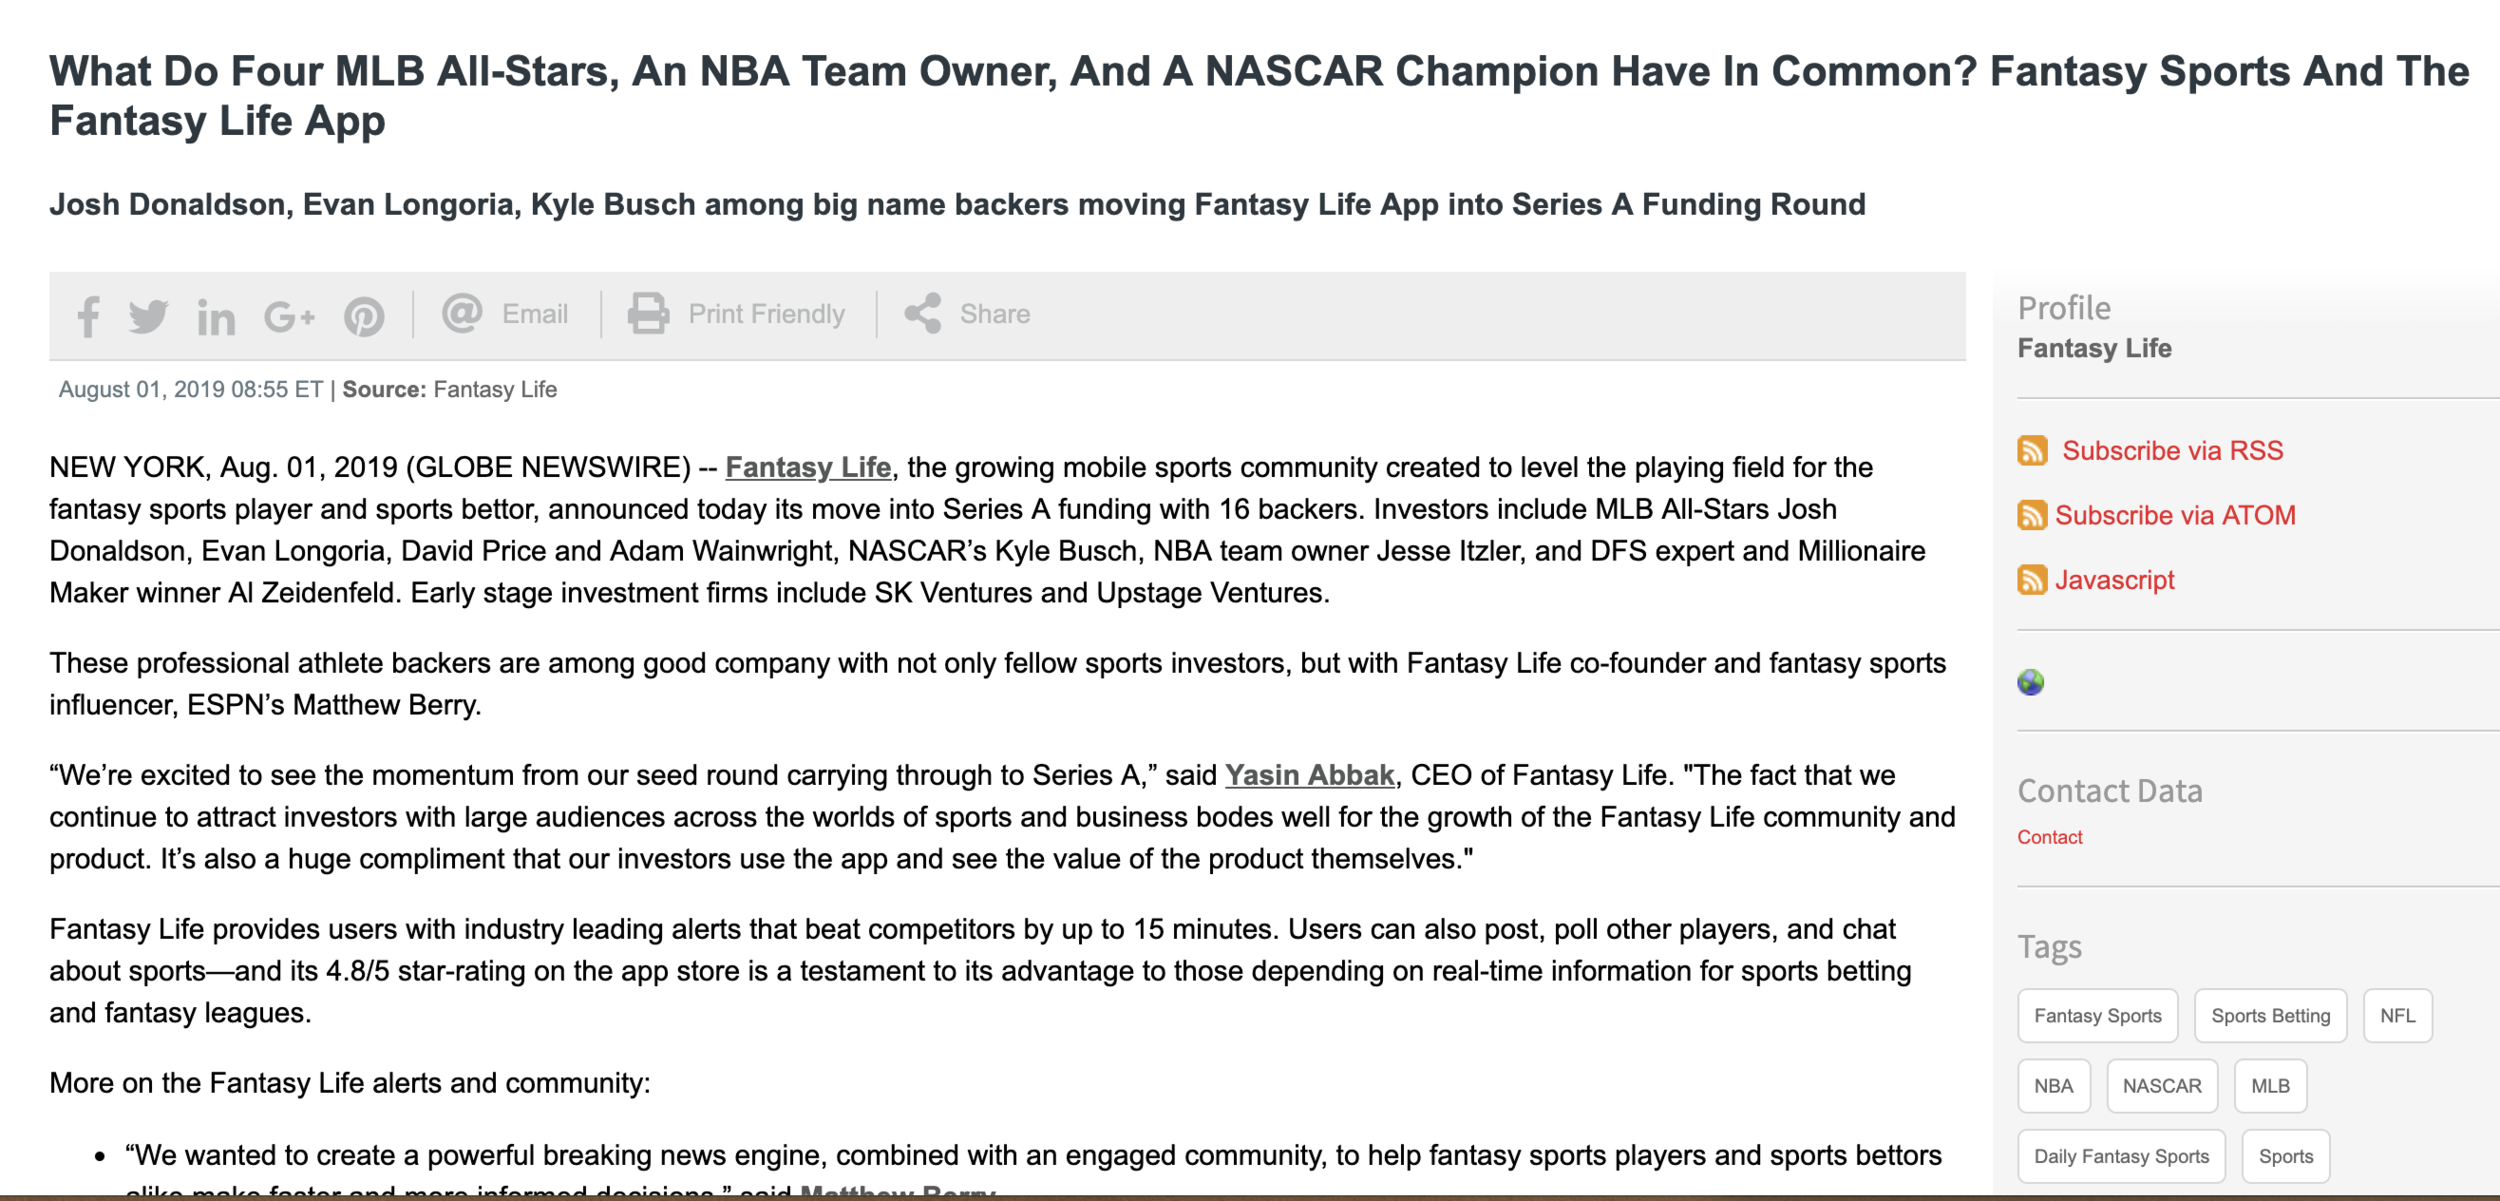 """""""What Do Four MLB All-Stars, An NBA Team Owner, And A NASCAR Champion Have In Common? Fantasy Sports And The Fantasy Life App""""— Global News Wire - Read More & Meet the Fantasy Life Investors."""